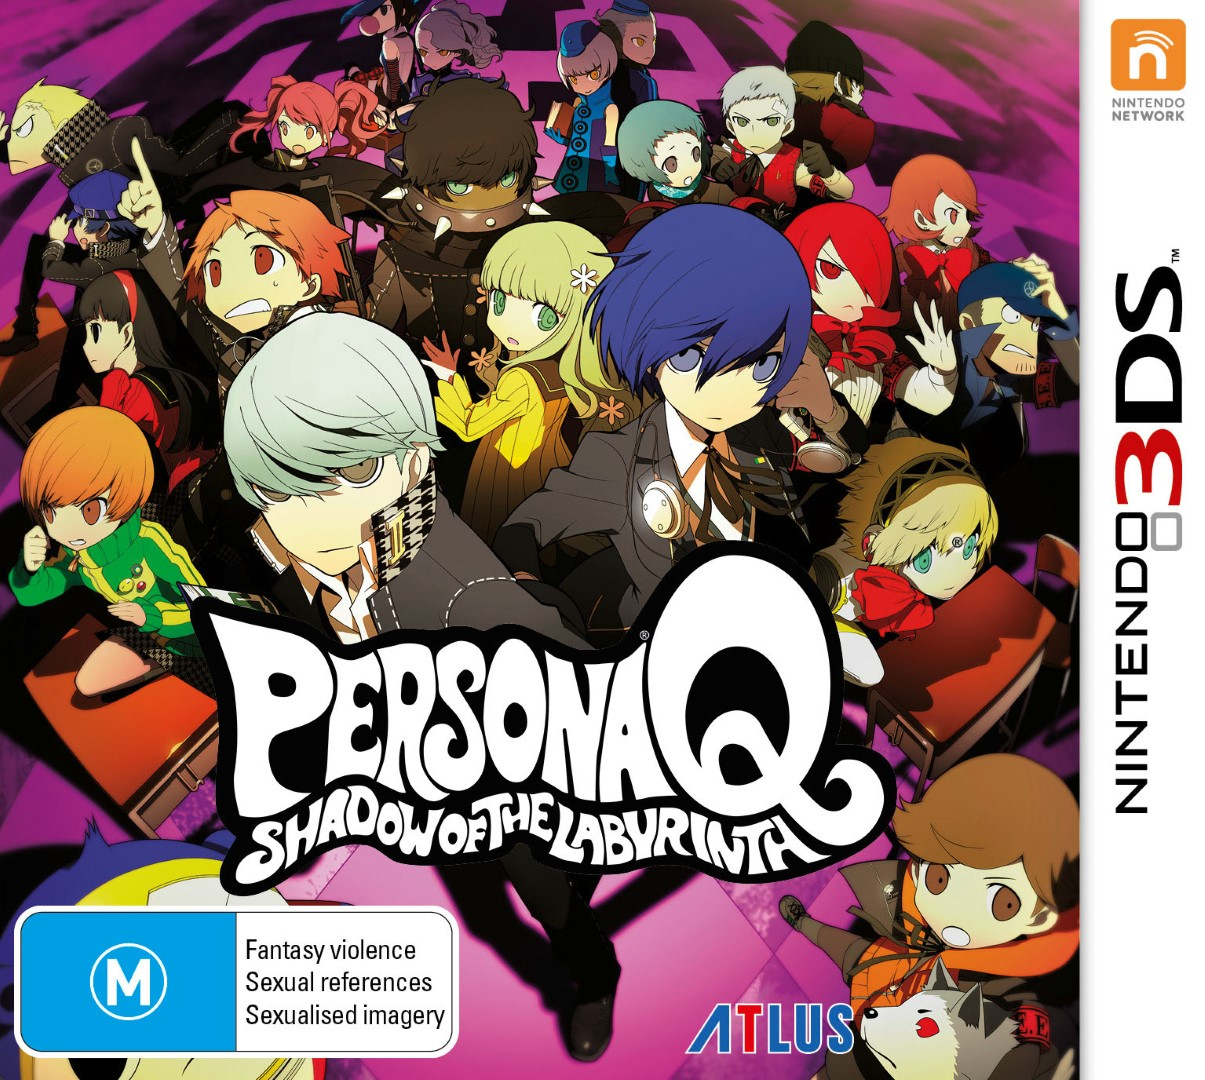 persona174 q shadow of the labyrinth is now available at